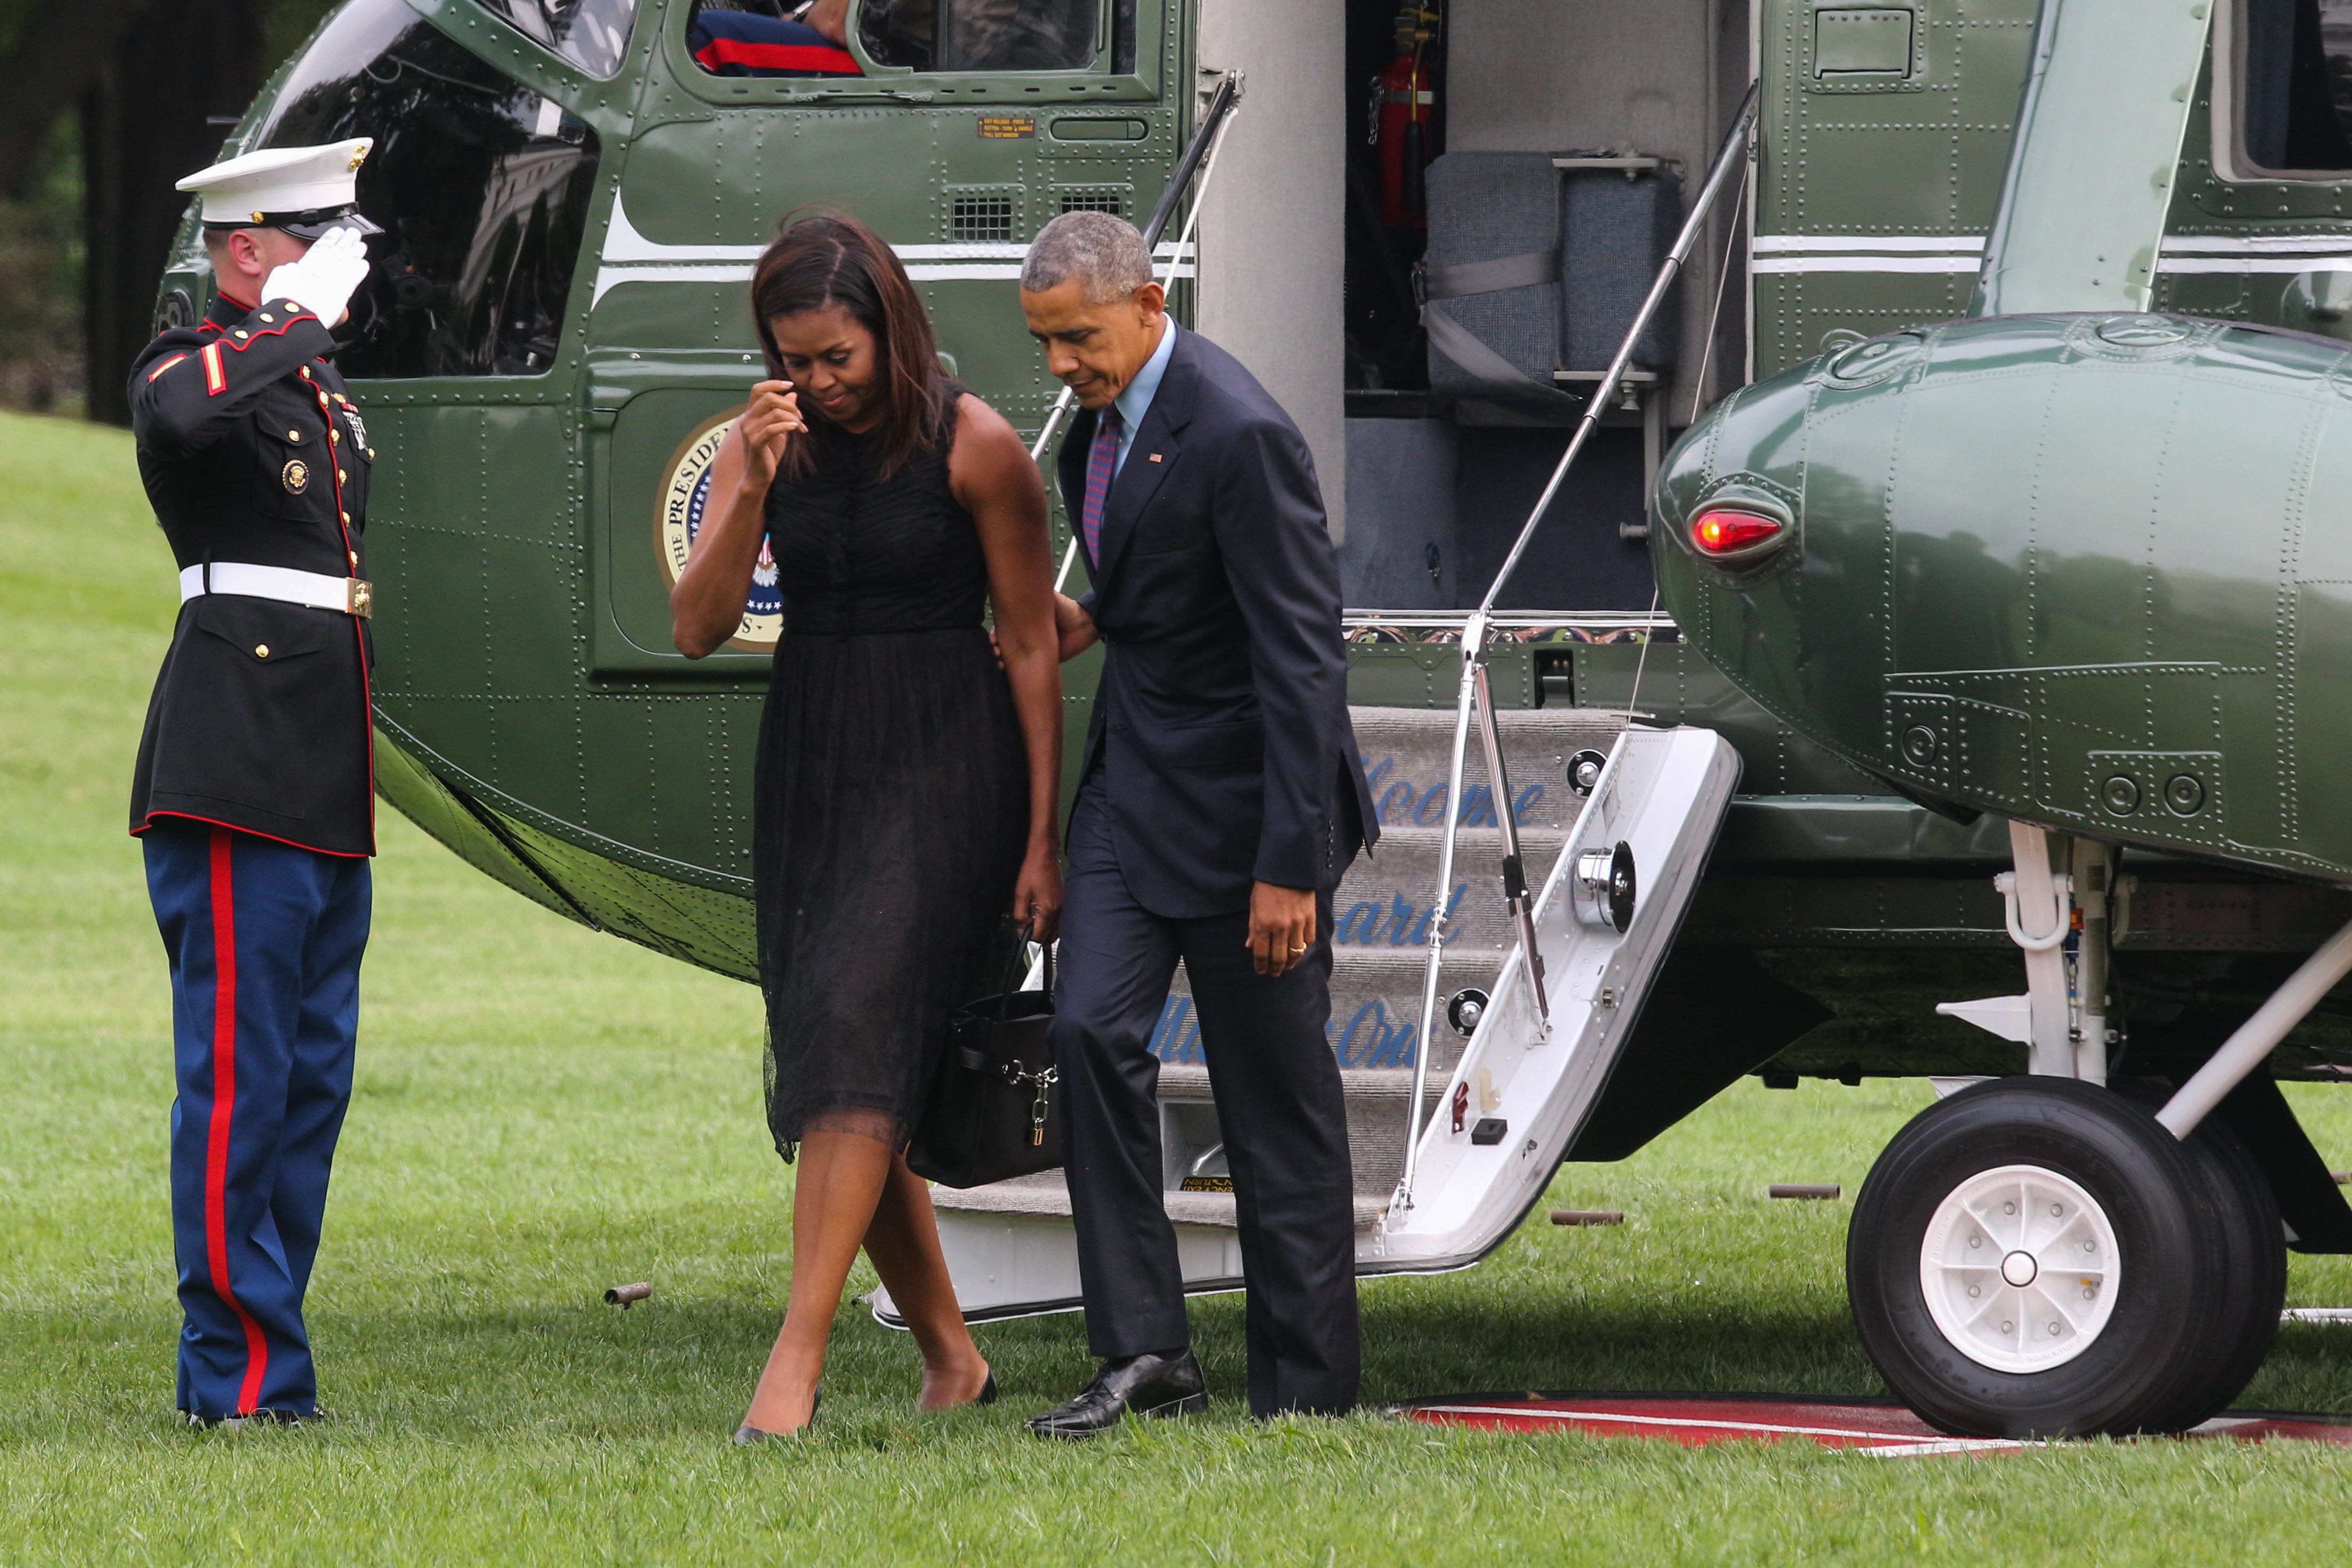 Obamas Now 'Disgusted' By Weinstein, After Daughter Malia Interned